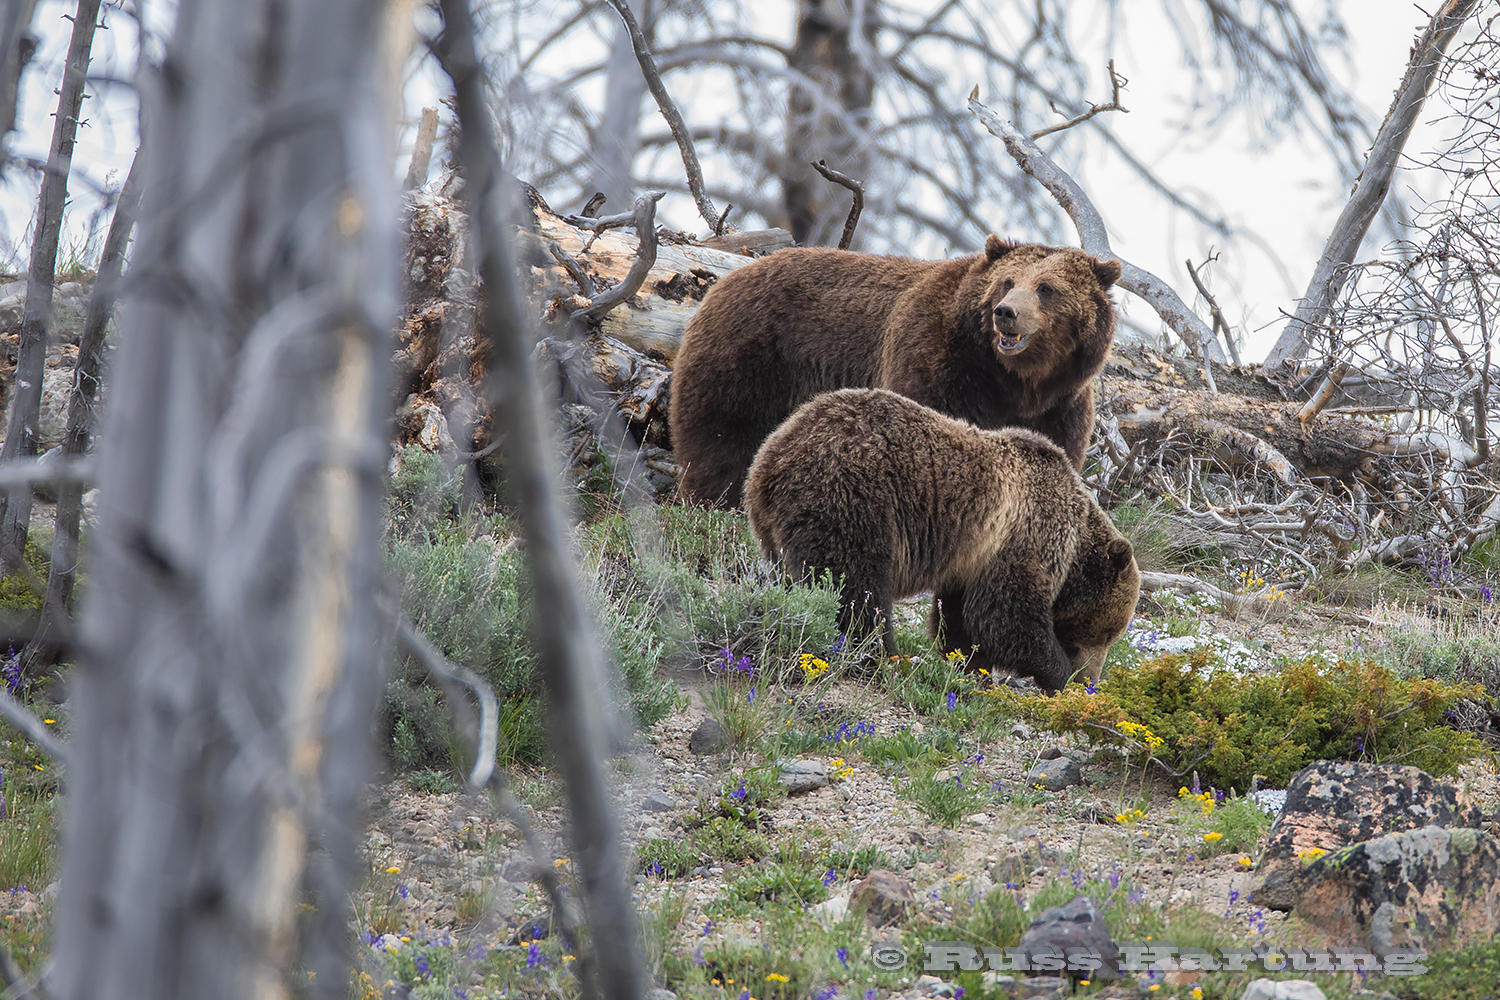 Momma grizzly and cub turning over rocks and logs, looking for bugs in Yellowstone National Park